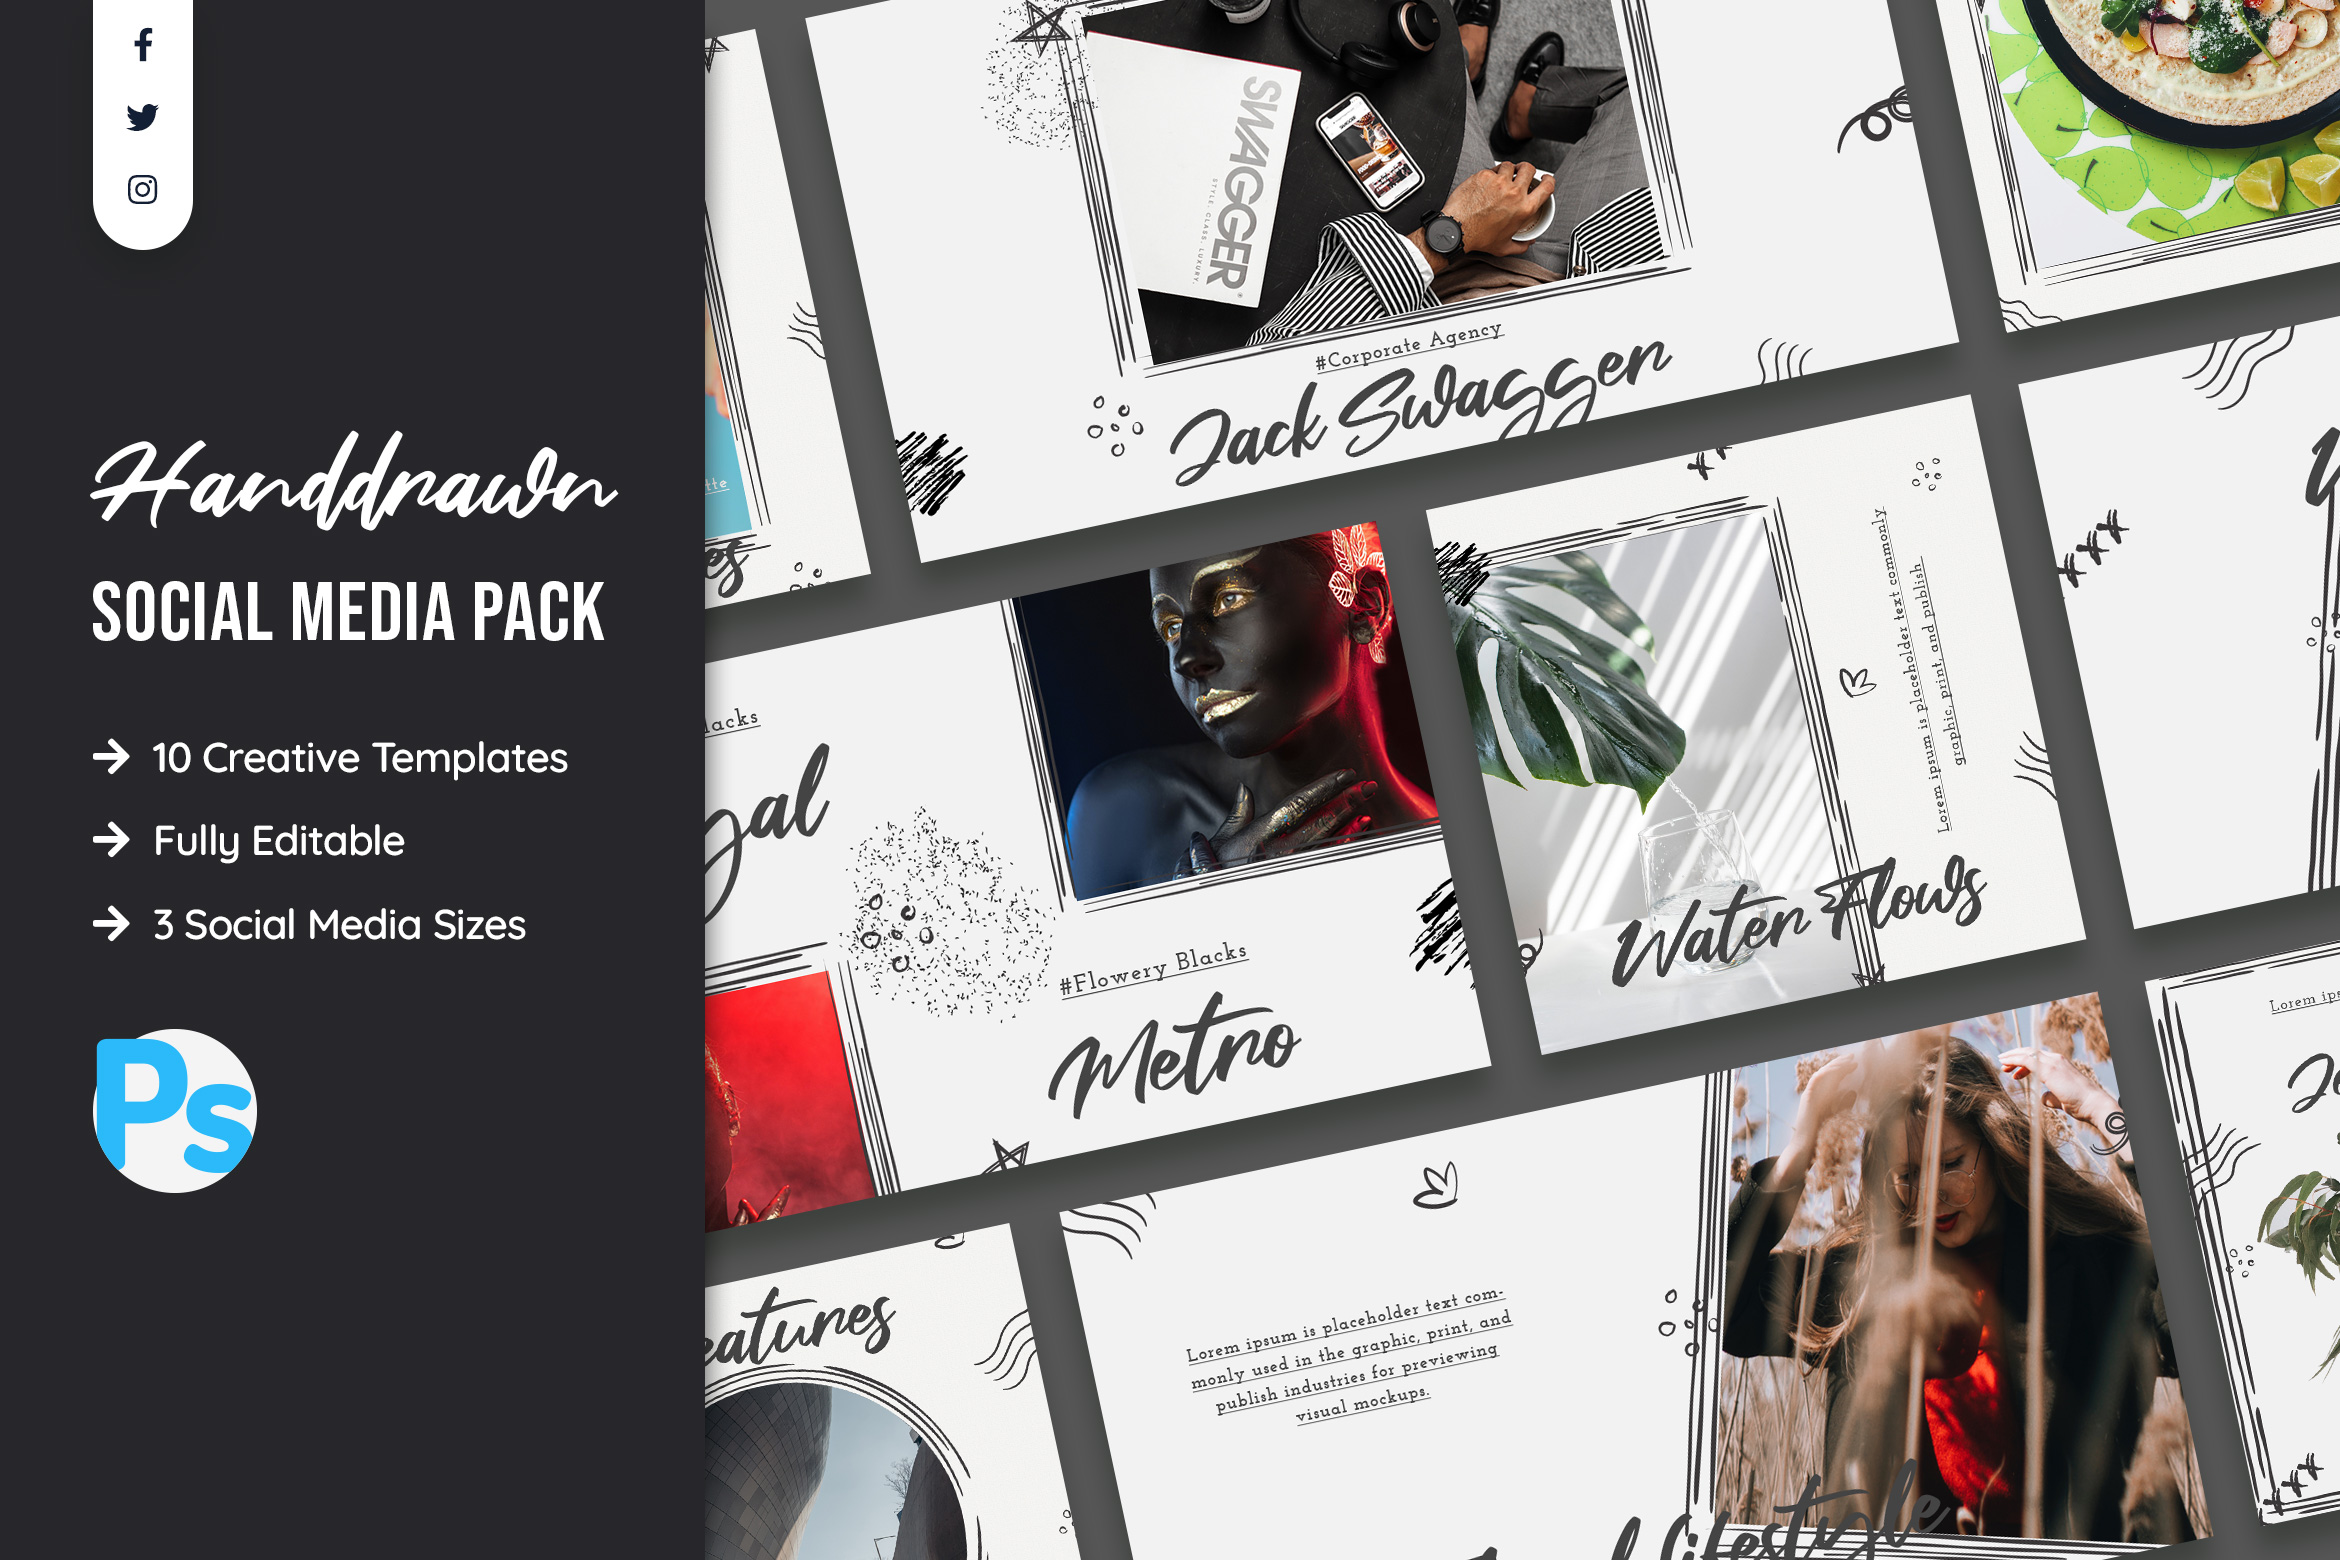 Hand Drawn Style Social Media Template